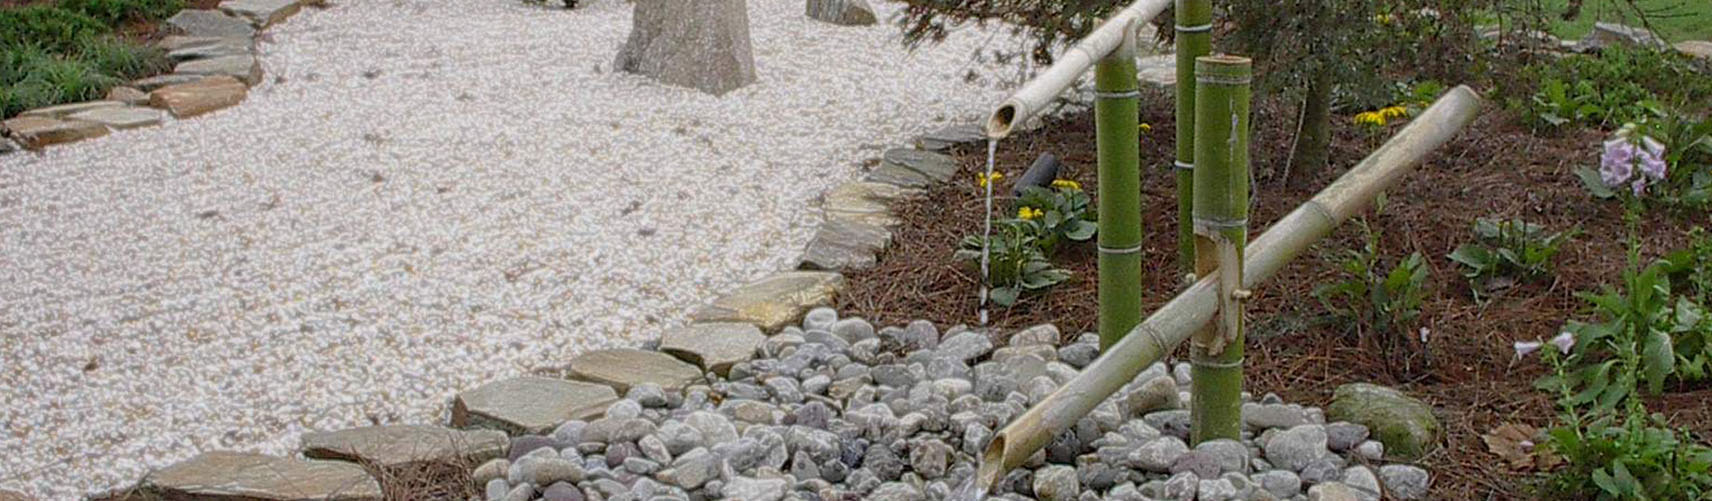 Landscaping Company, Landscaper and Landscaping Services